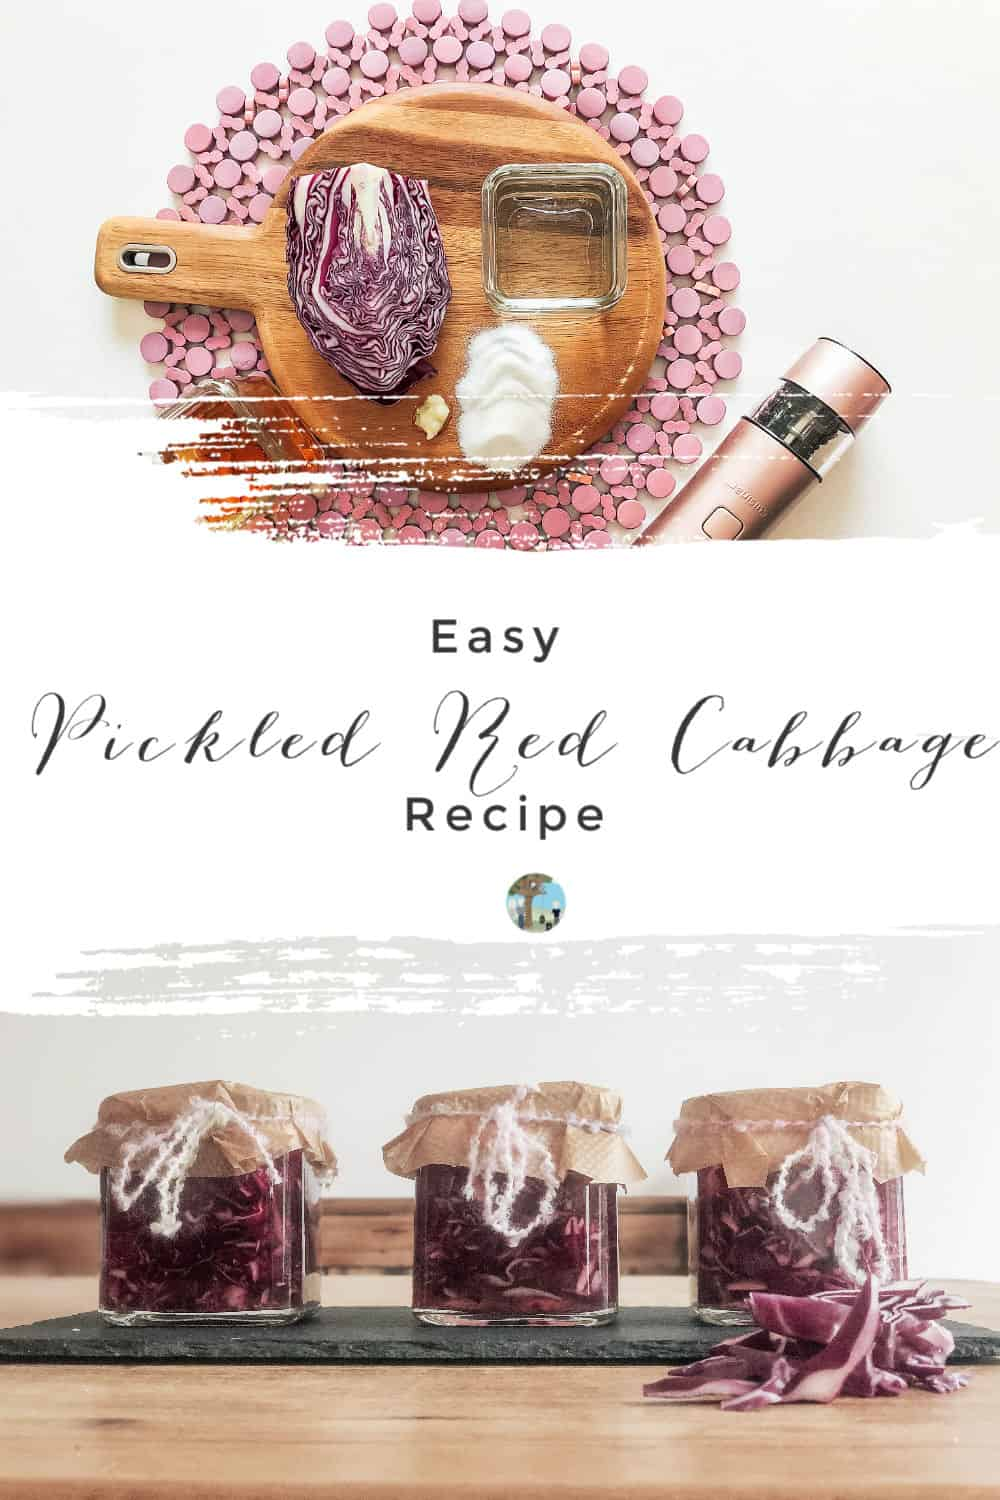 Easy pickled red cabbage recipe, perfect for salads, pies and fajitas